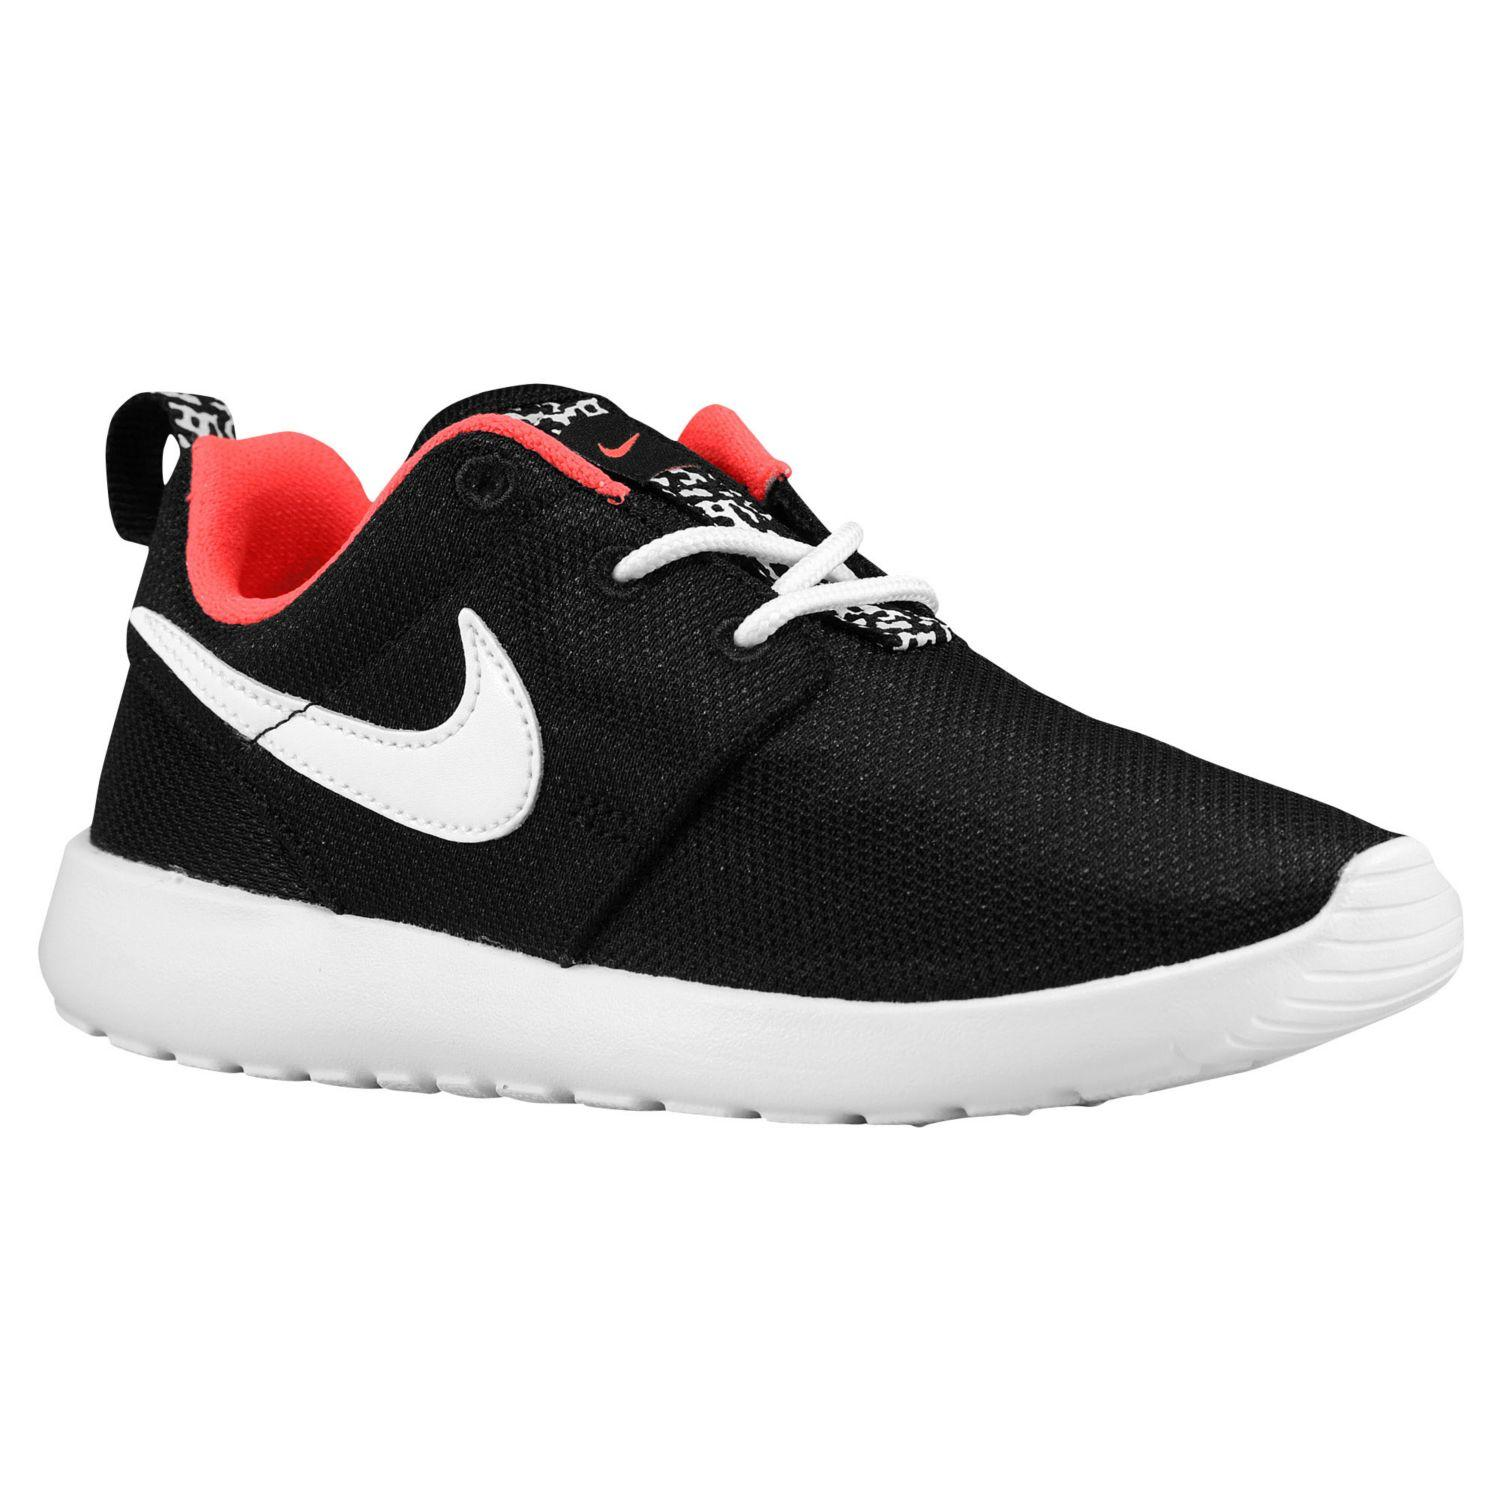 Shop nike roshe red at champs softmyconro.ga roshe one men's maroon black nike roshe softmyconro.ga roshe one boys' grade school red white. Buy nike men's roshe run and other road running at roshe run for men red our wide selection is eligible for free shipping and free softmyconro.ga there is a letter of Sir Charles Wogan's, stating that he first took.